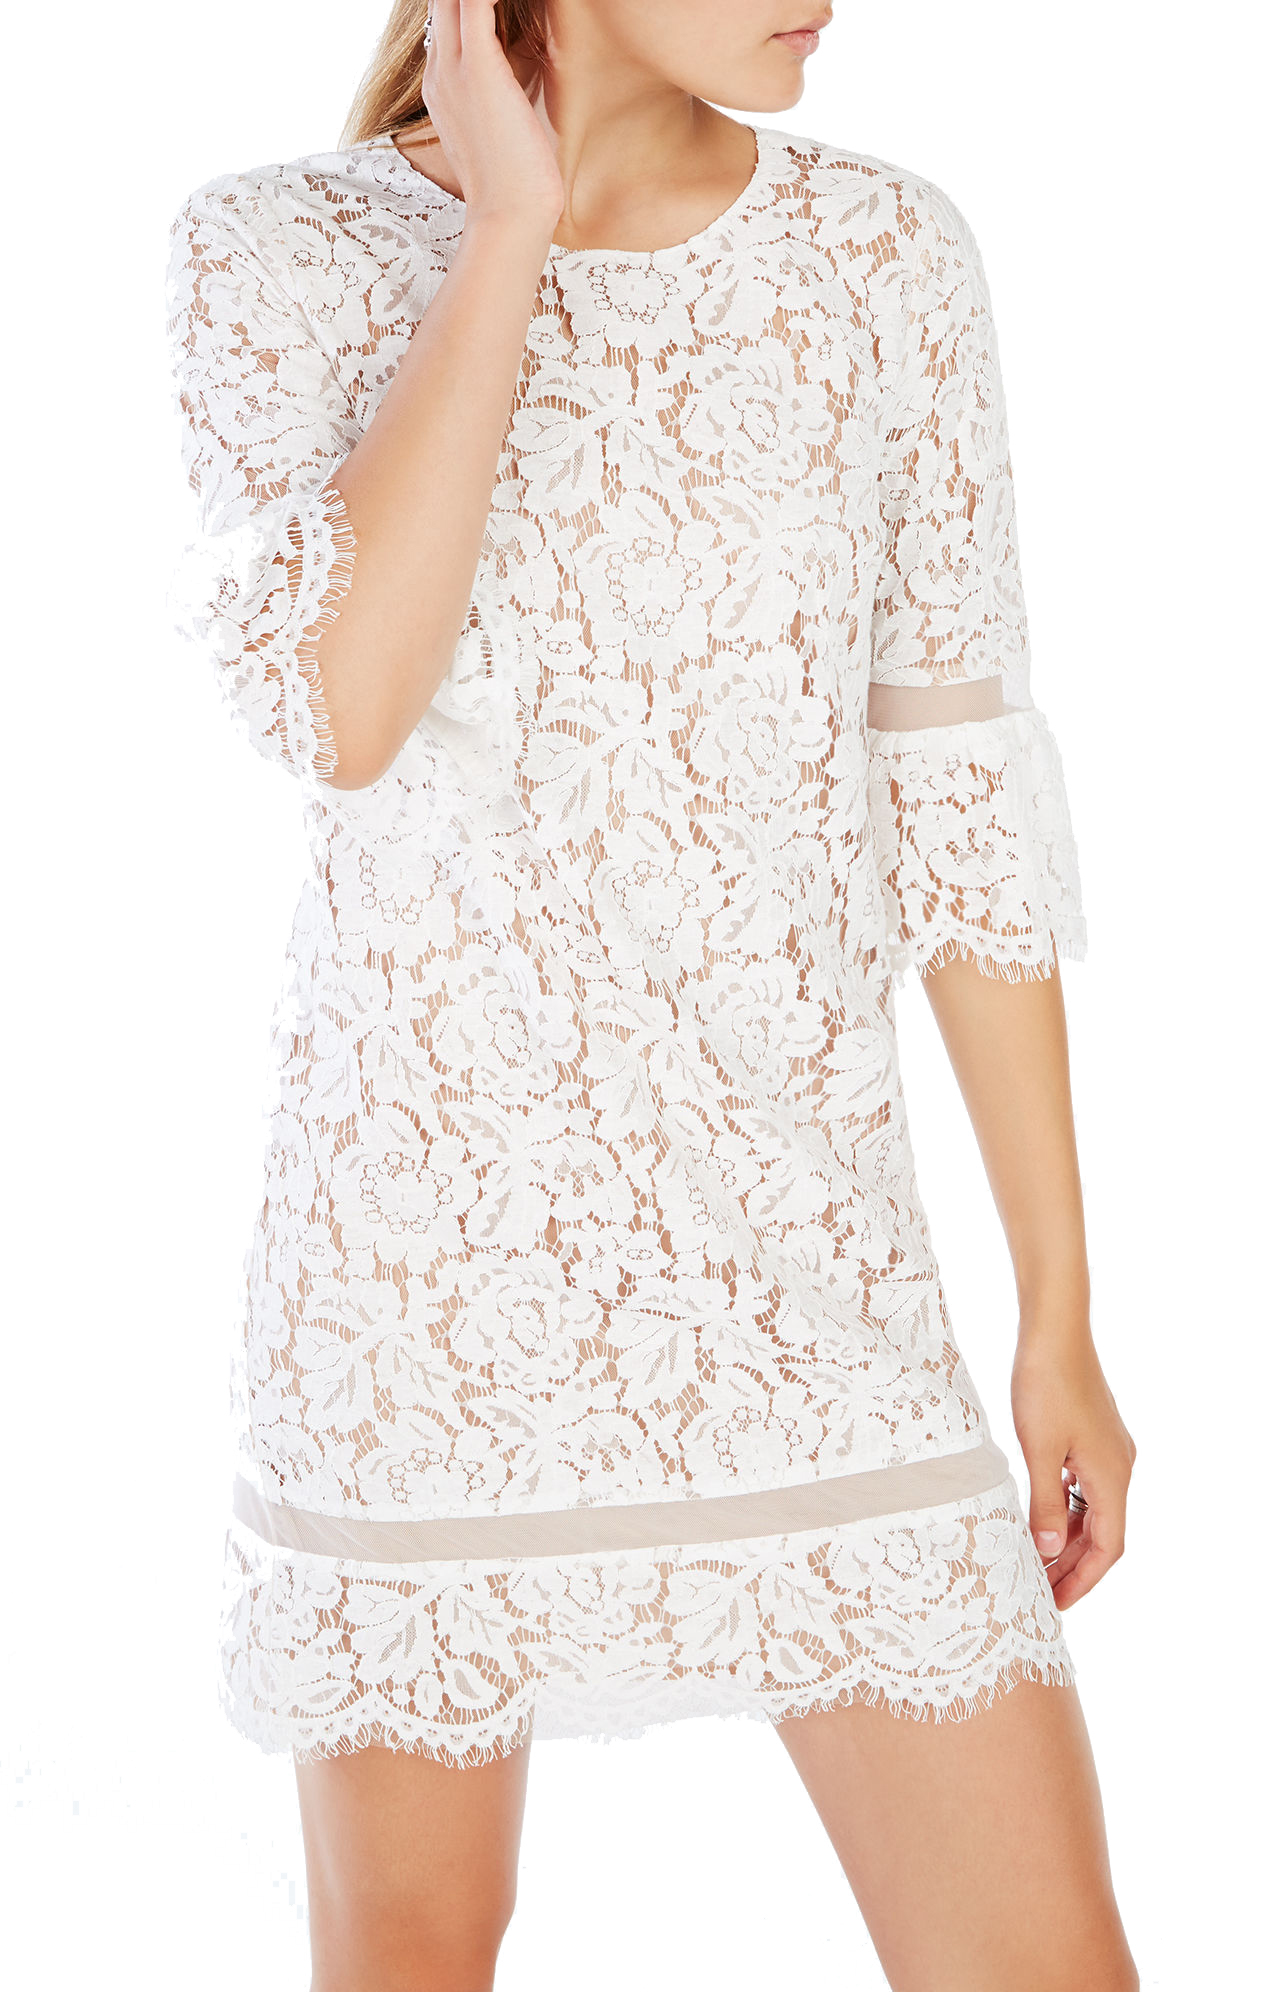 BCBGMAXAZRIA Celestia Lace Dress Image